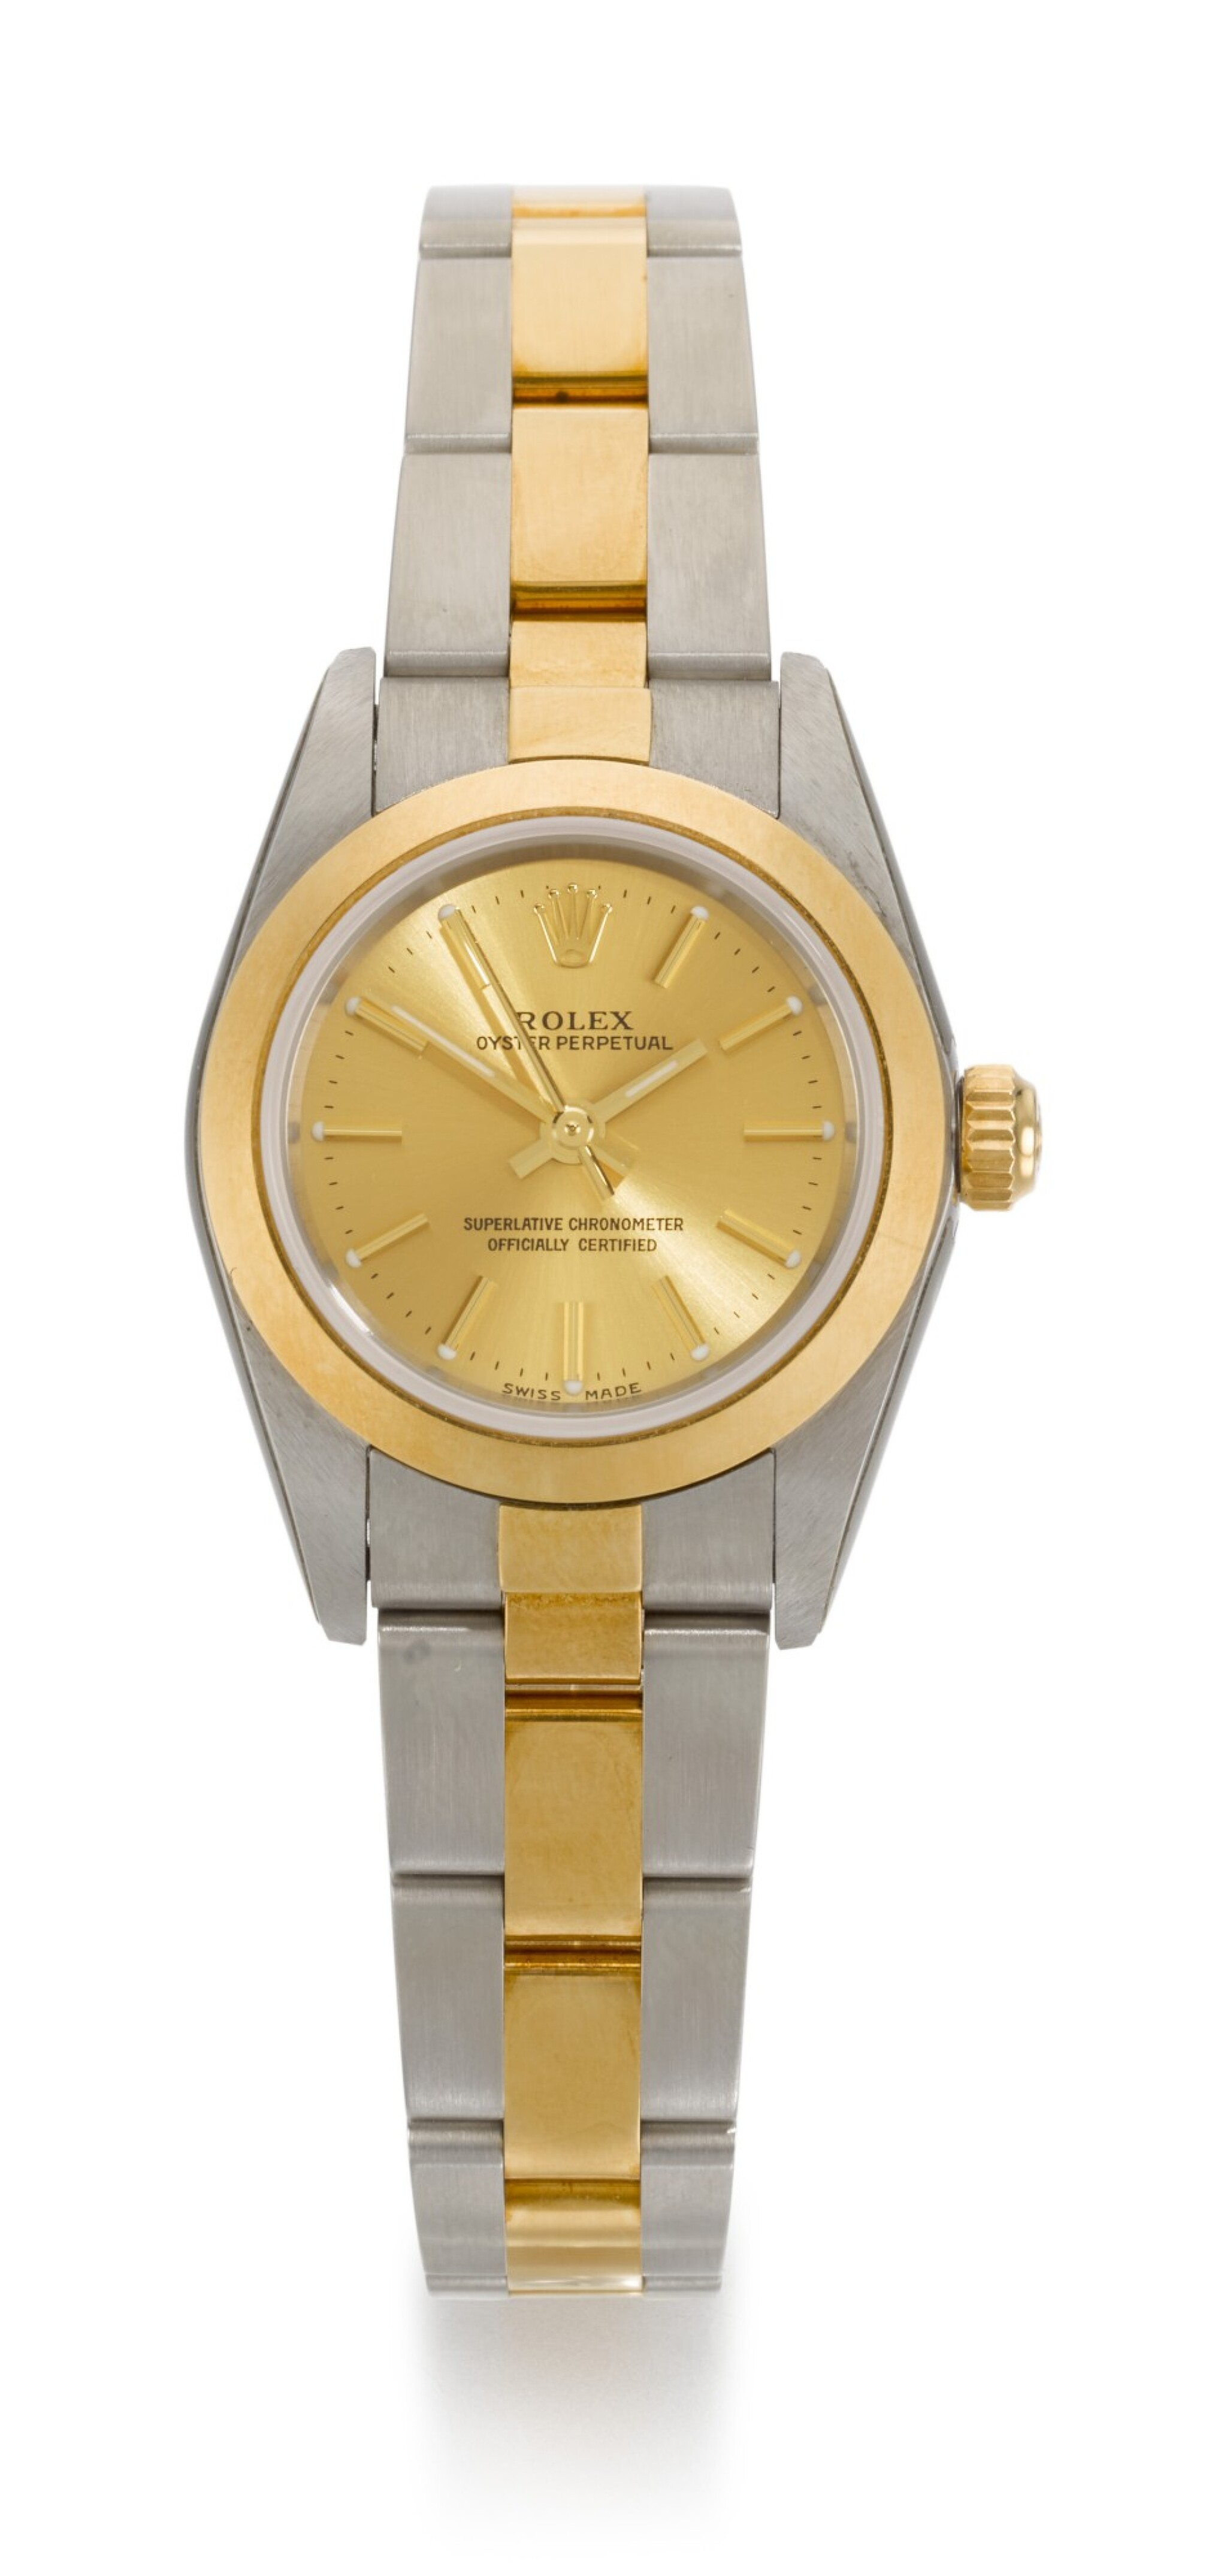 View full screen - View 1 of Lot 23. ROLEX | OYSTER PERPETUAL, REFERENCE 76183, STAINLESS STEEL AND YELLOW GOLD WRISTWATCH WITH BRACELET, CIRCA 2002.